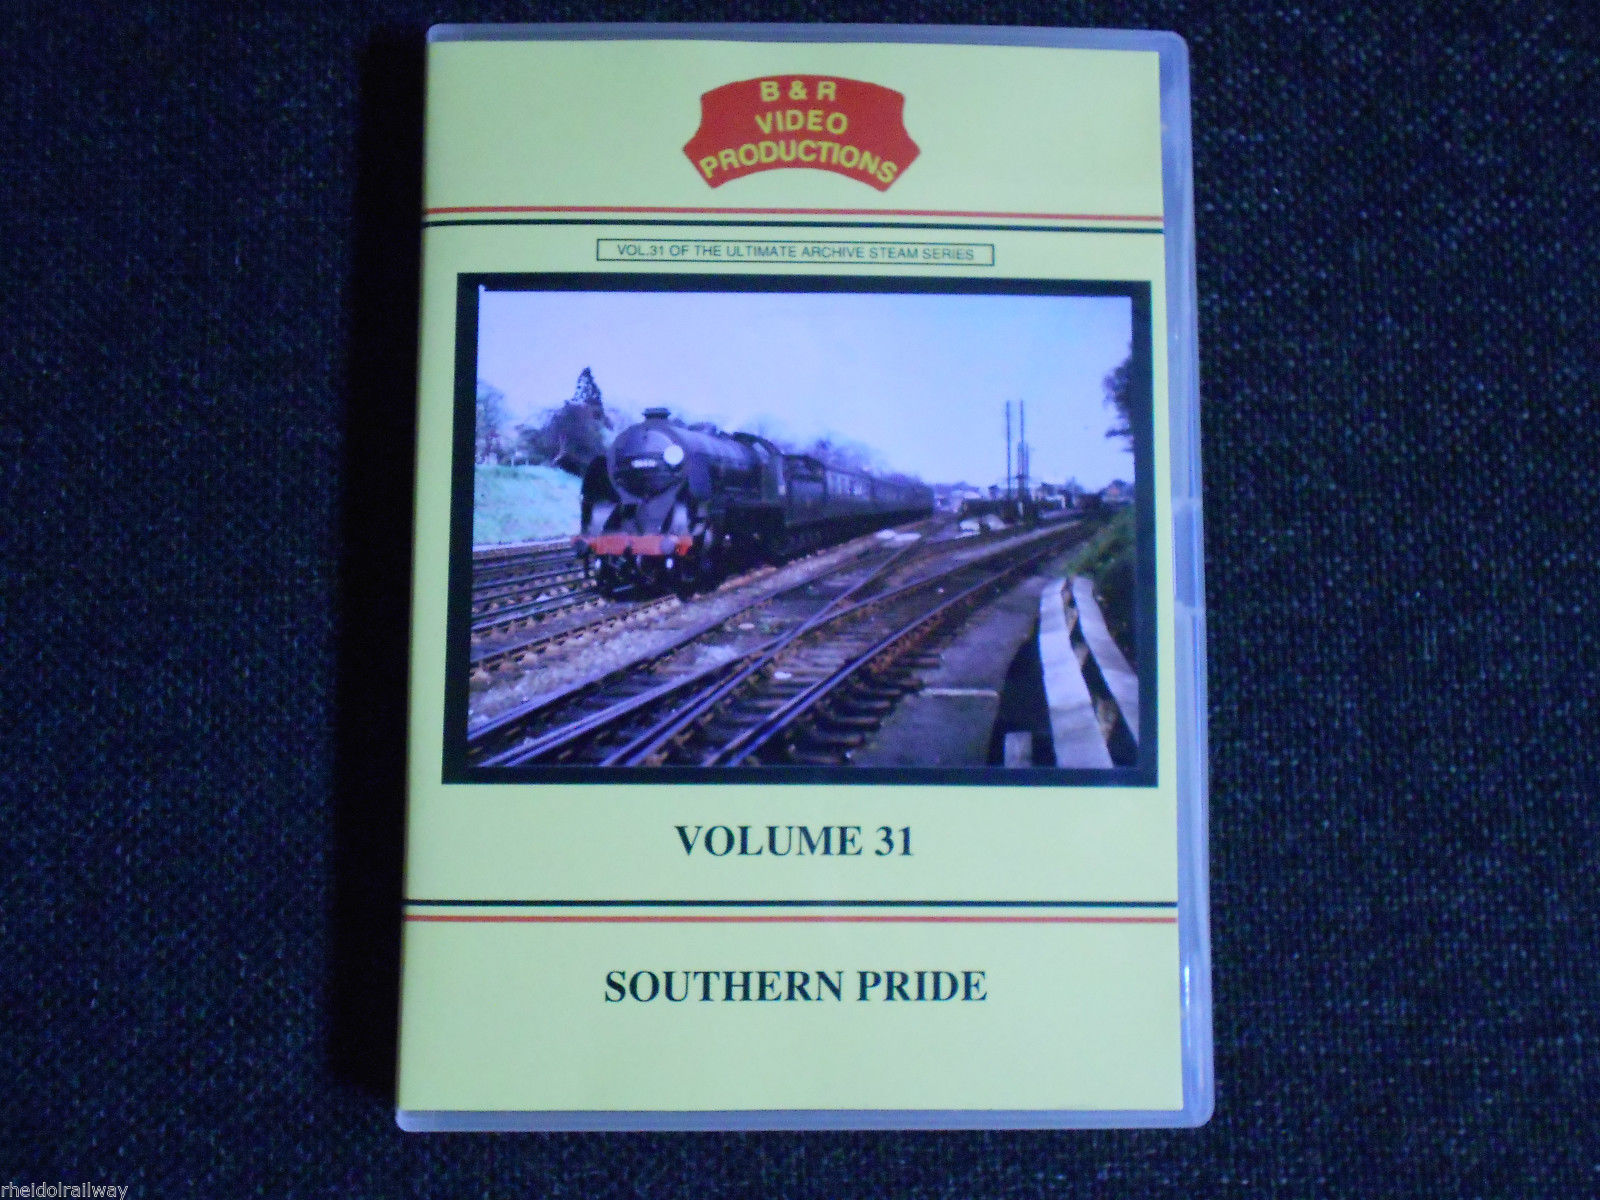 Feltham, Nine Elms, Haywards Heath, Southern Pride, B & R Volume 31 DVD